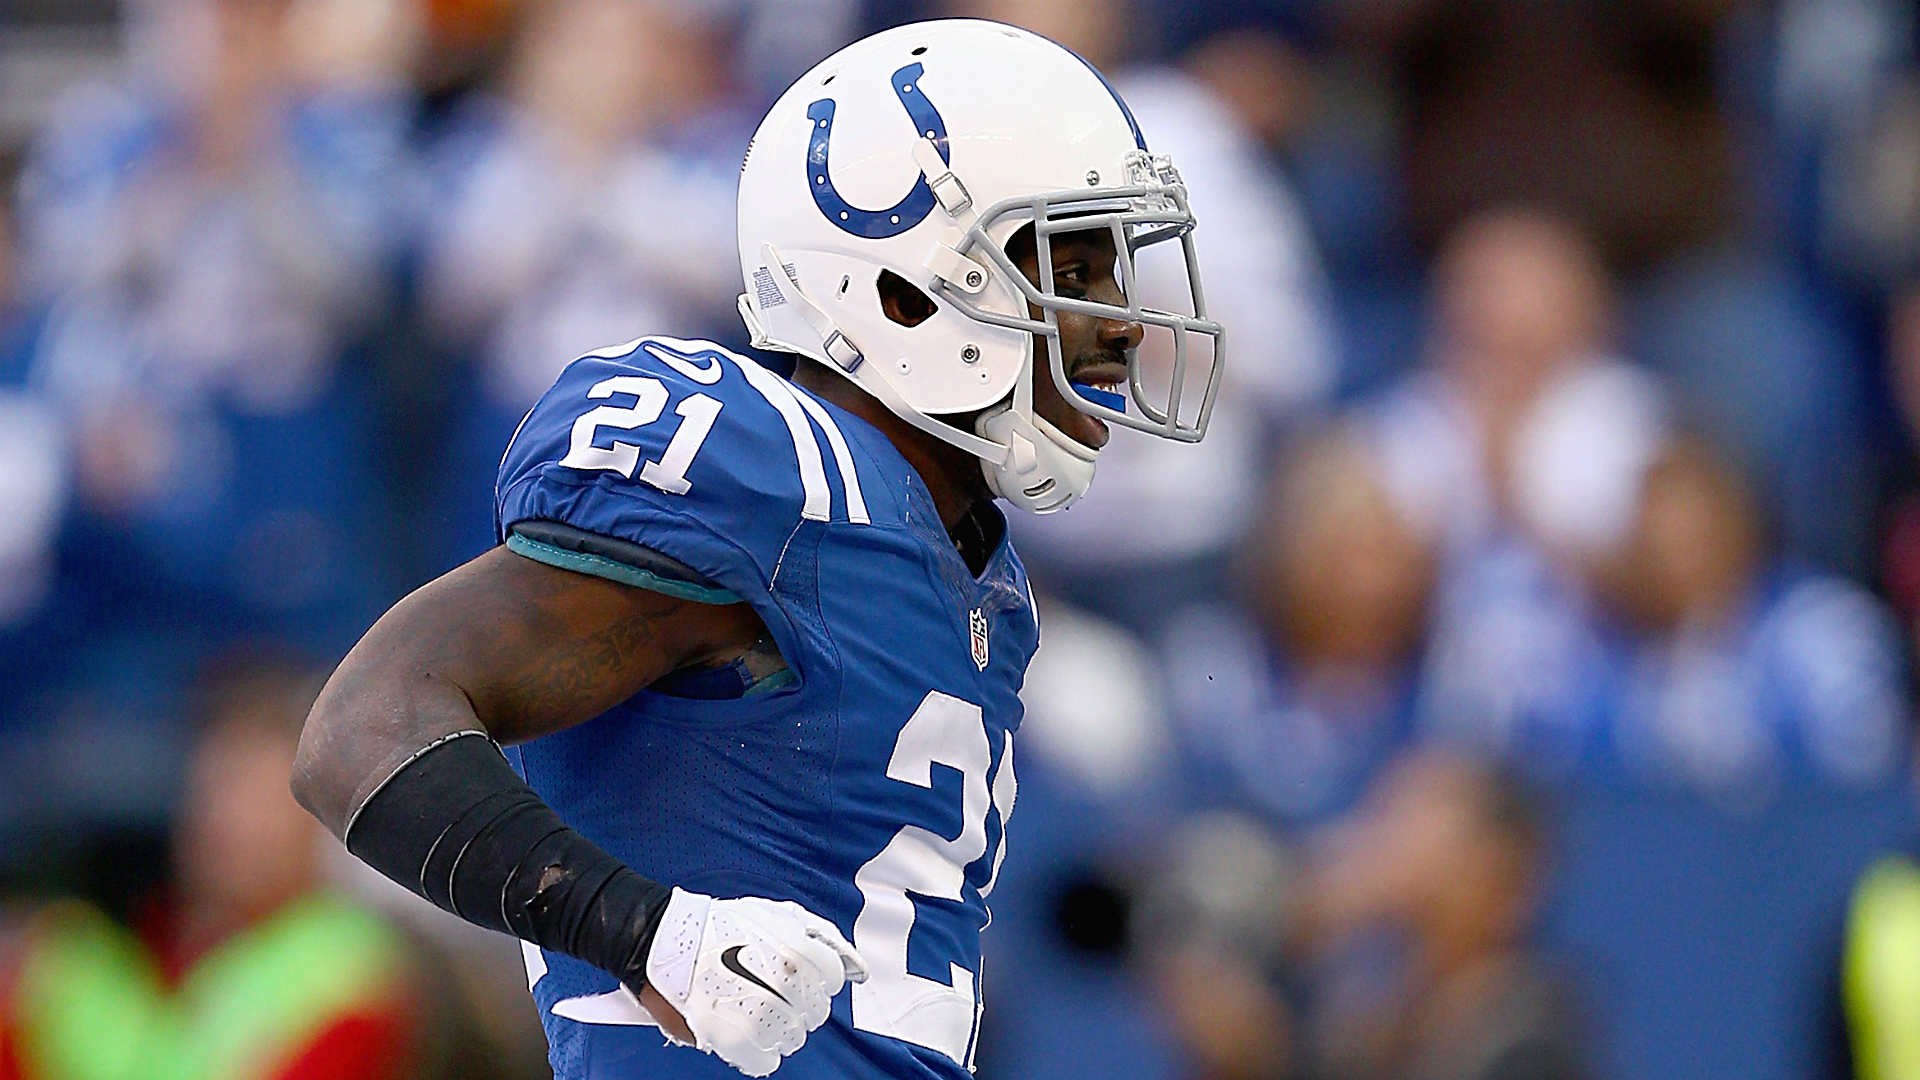 Colts Cut Vontae Davis Before He Can Have Season-Ending Surgery